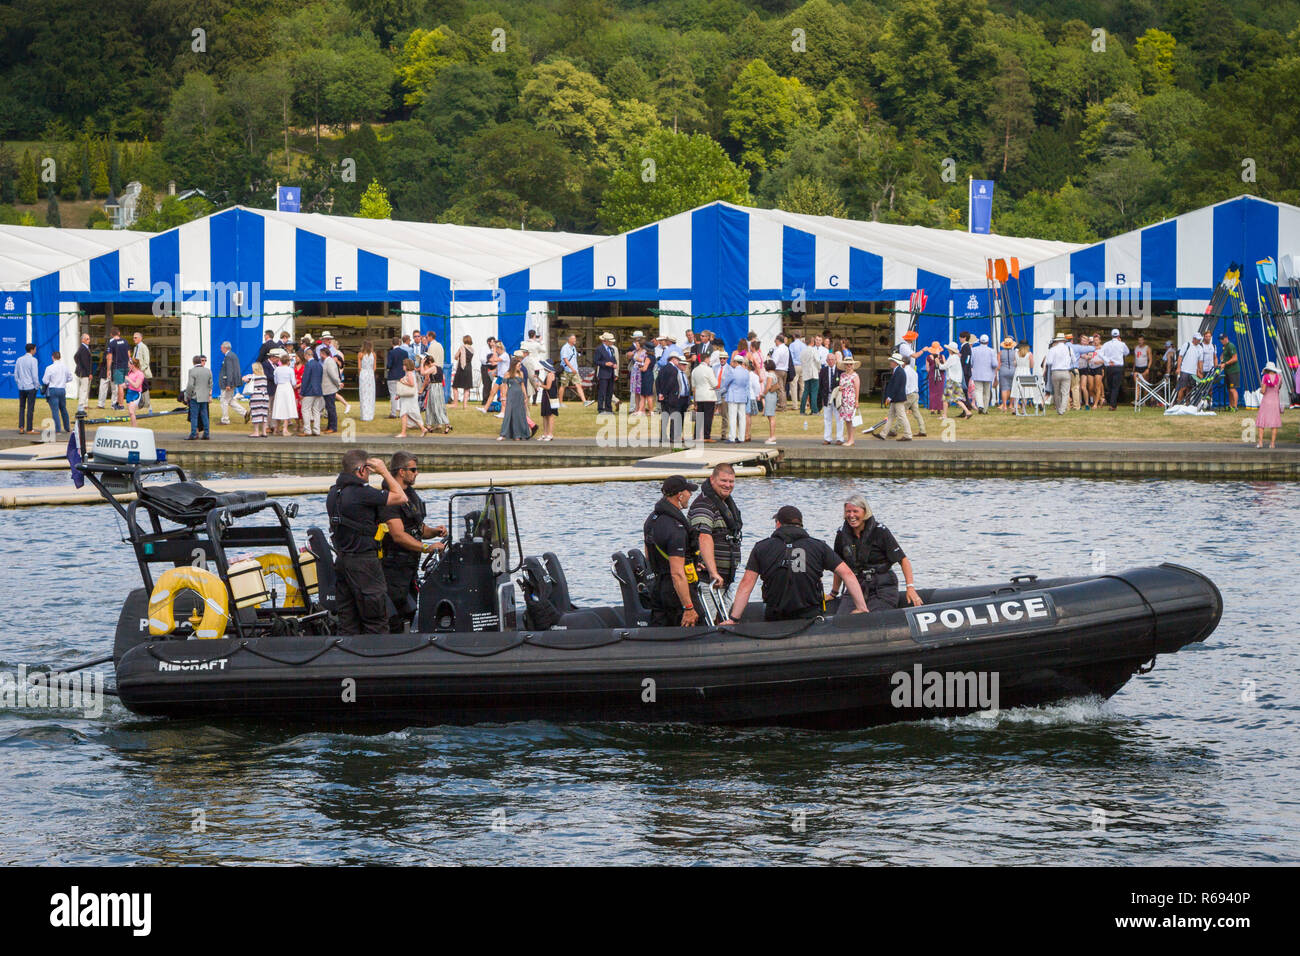 Thames Valley Police patrol the river in their RIB in front of the Boat Tents at Henley Royal Regatta - Stock Image